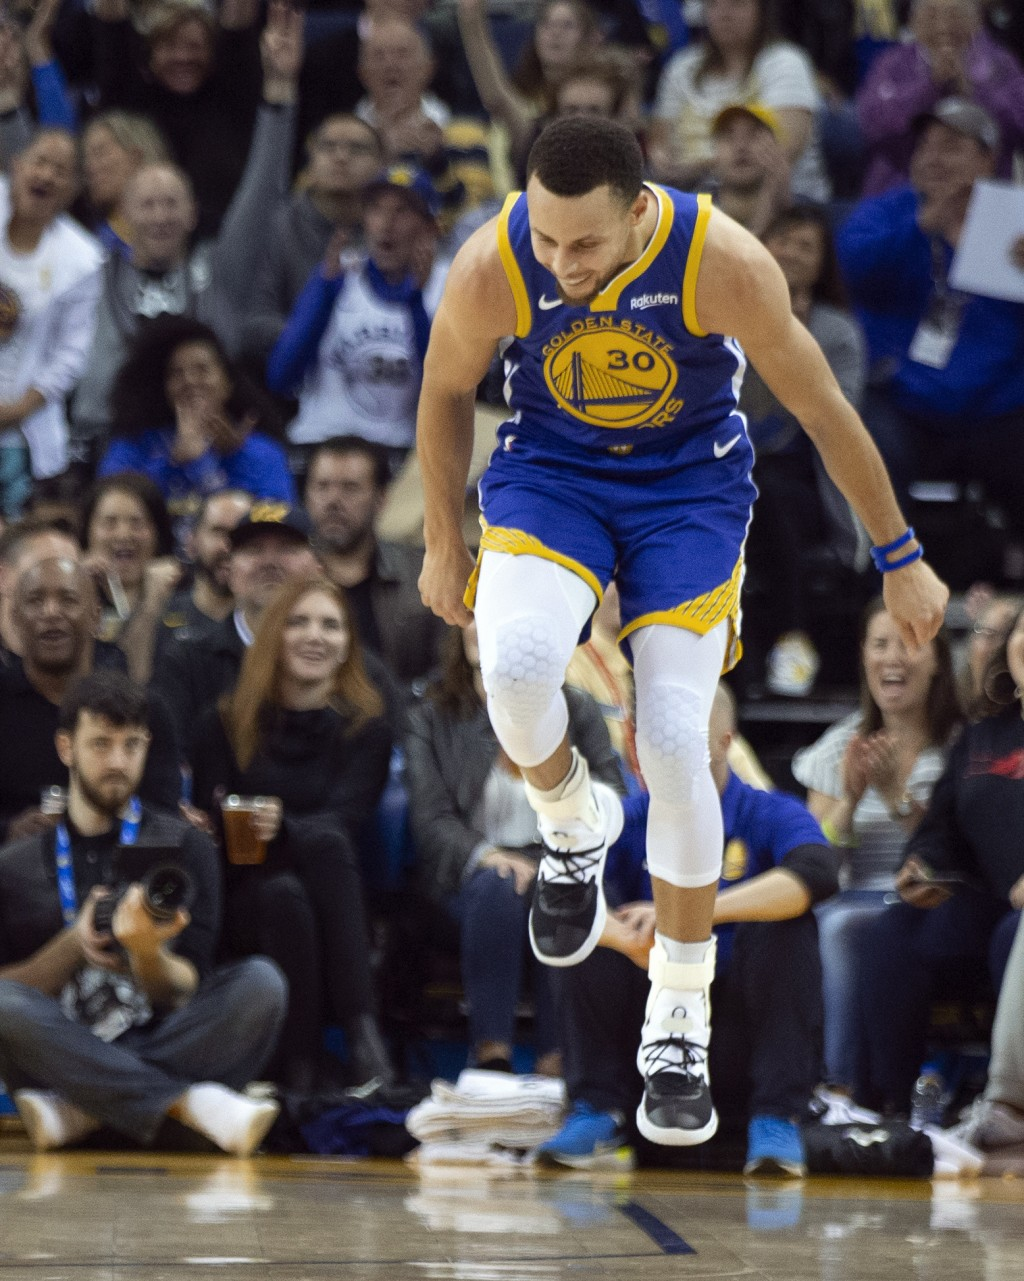 Golden State Warriors' Stephen Curry celebrates a 3-point basket against the Dallas Mavericks during the second quarter of an NBA basketball game Satu...